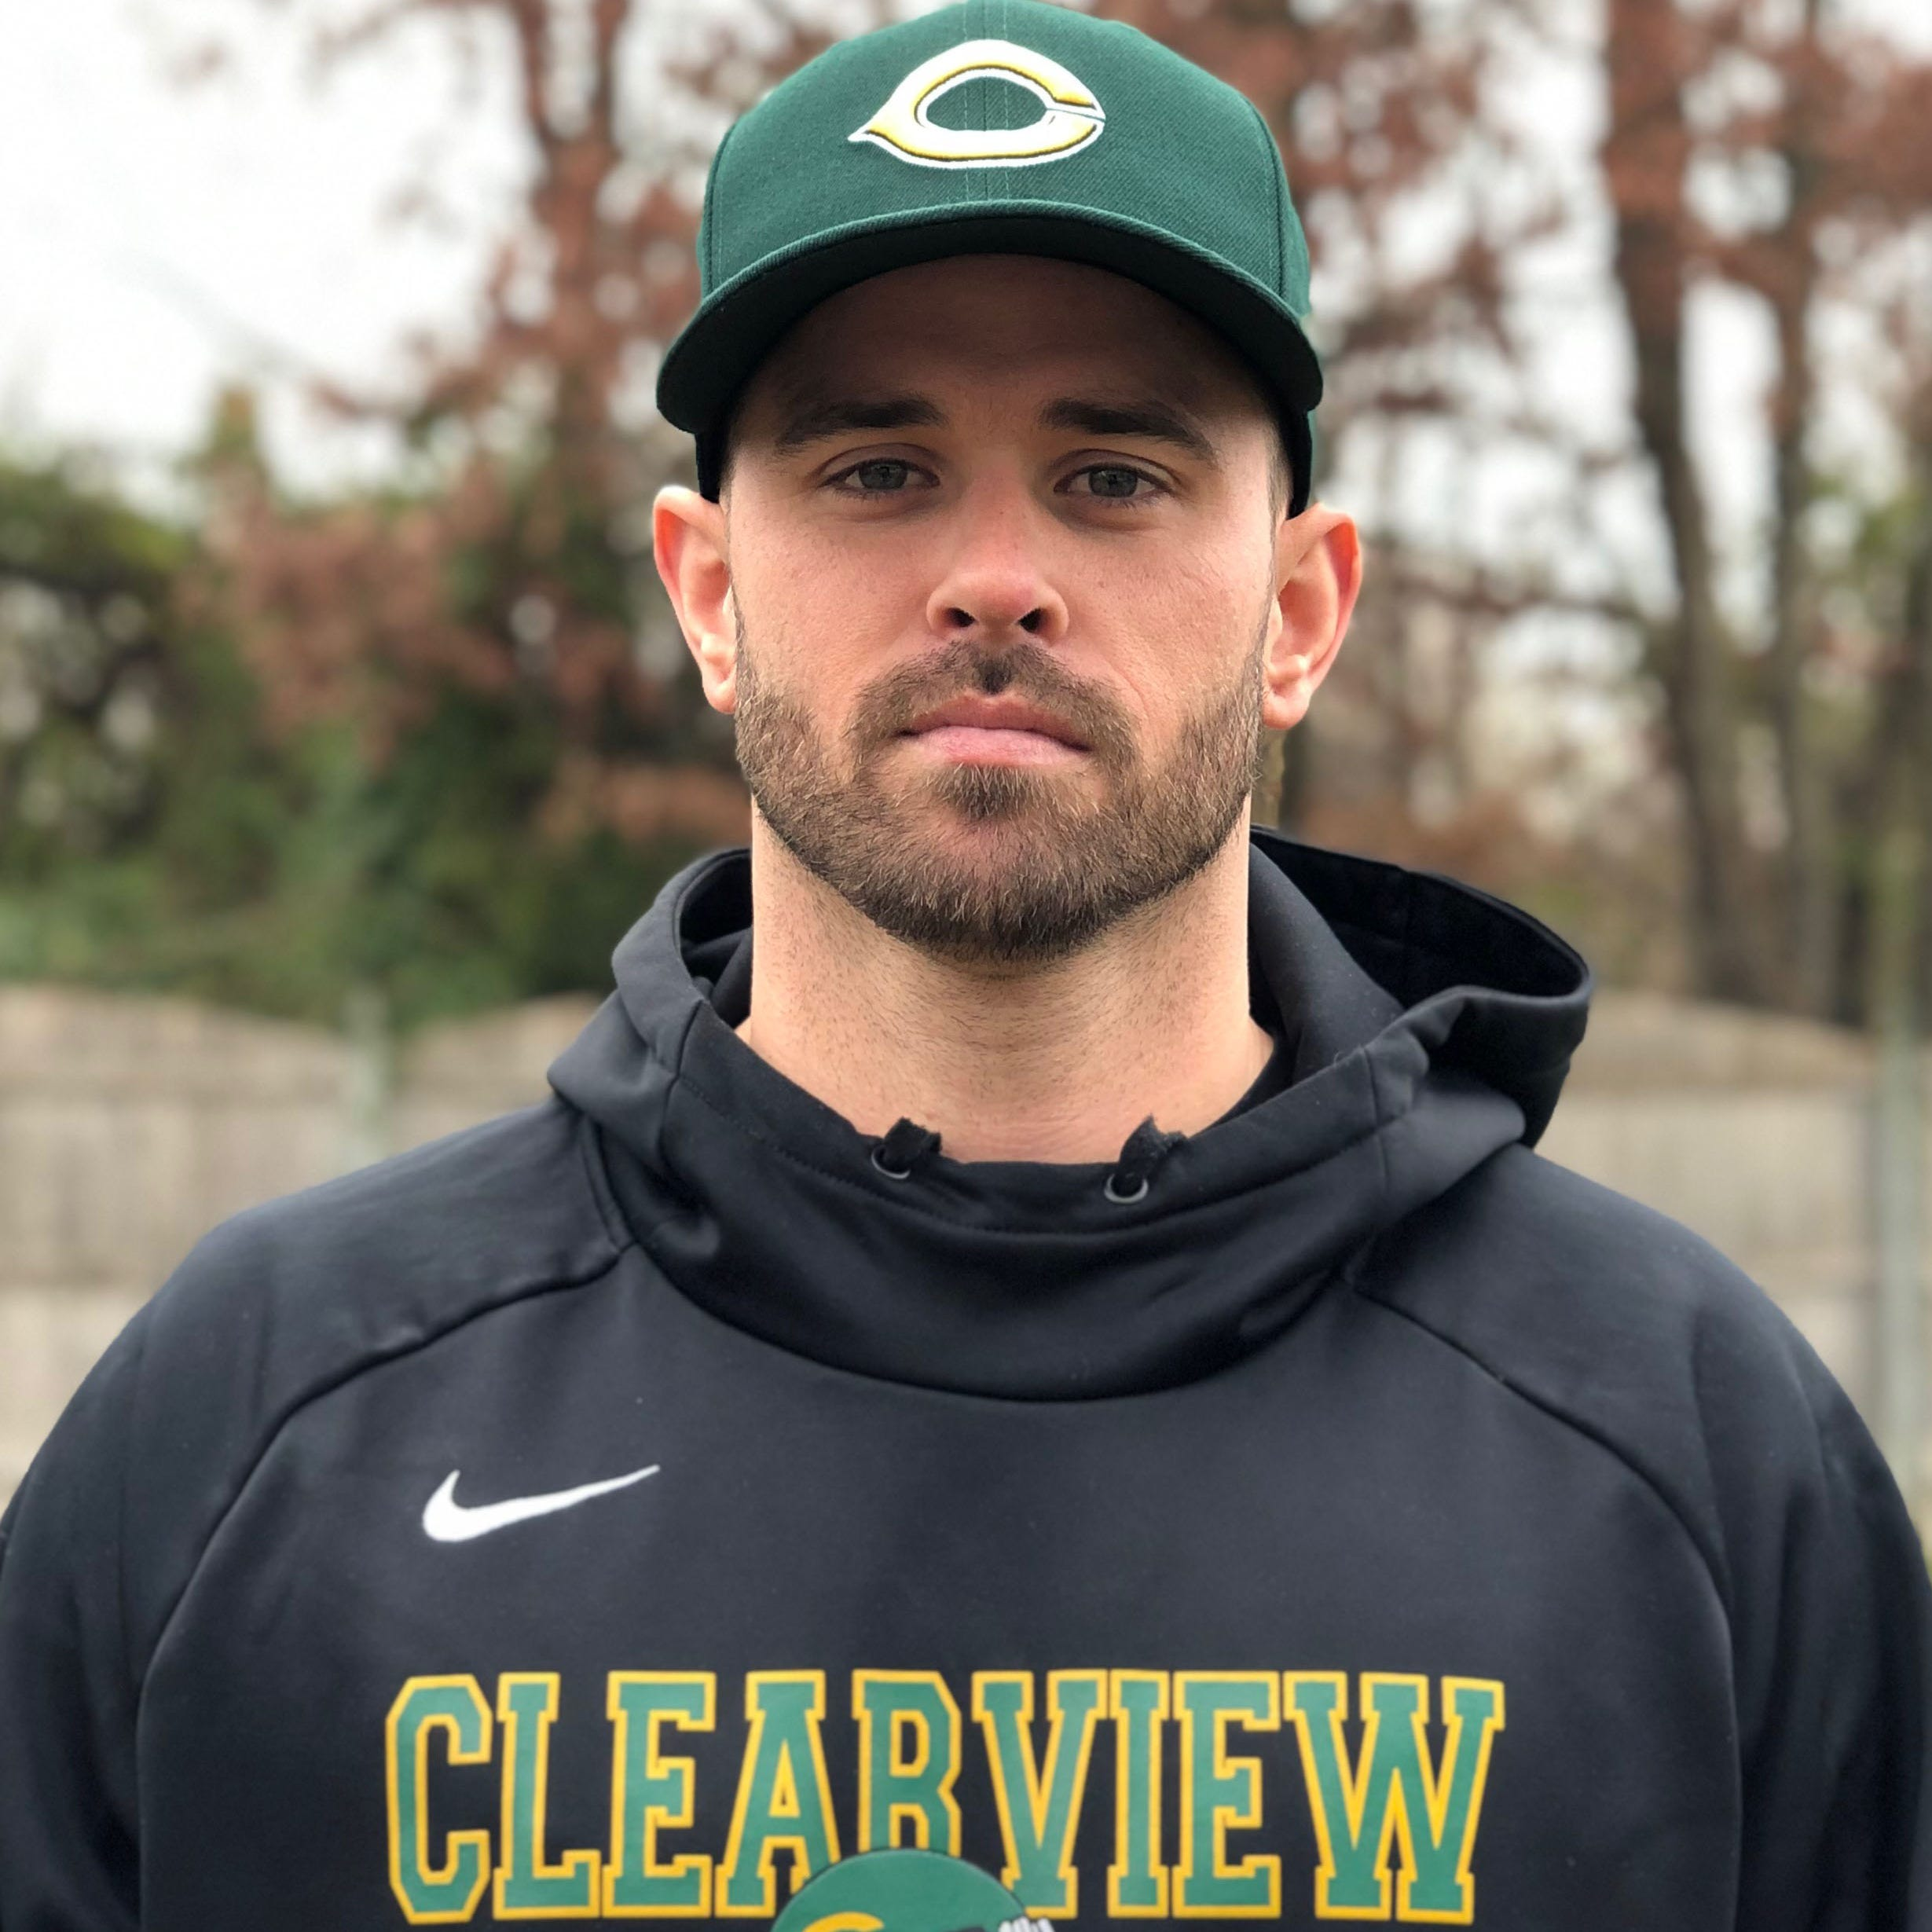 South Jersey Football: Clearview's Steve Scanlon is Coach of the Year